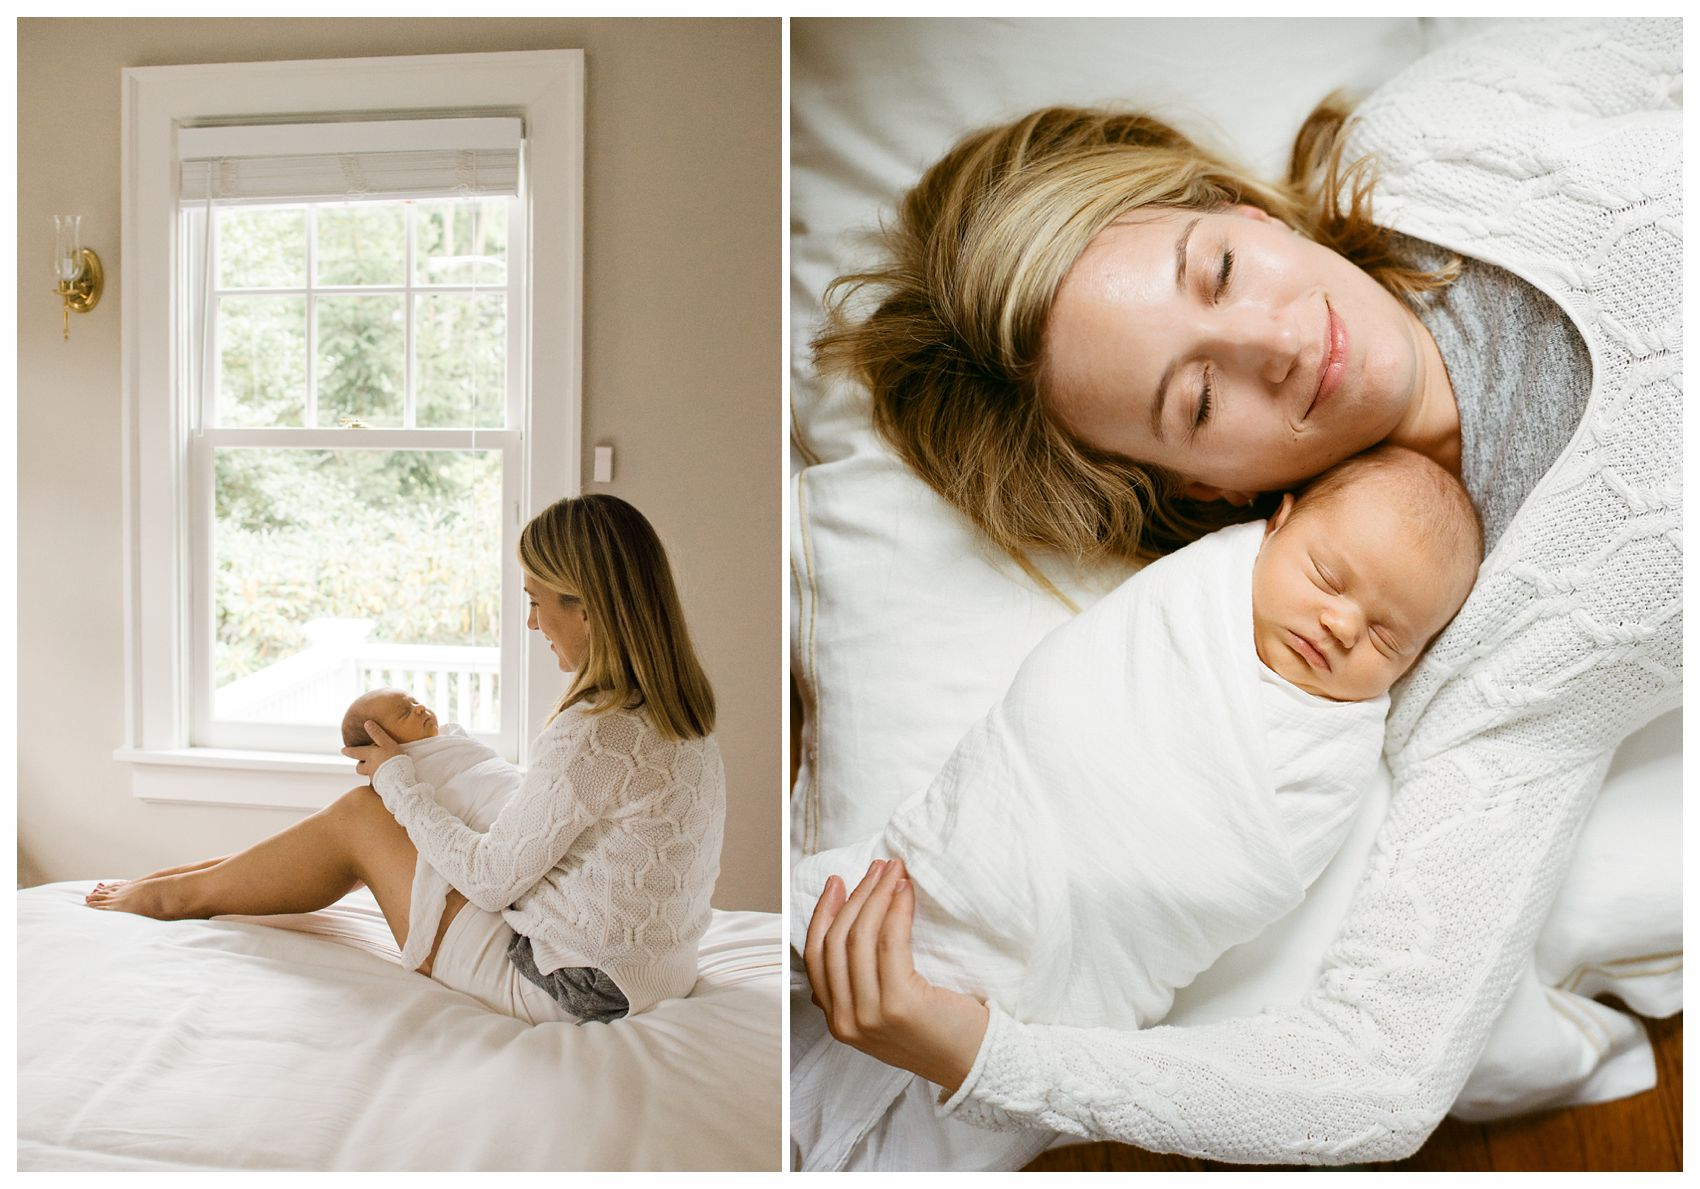 a photo of a mom snuggled with her baby girl makes it a great gift idea